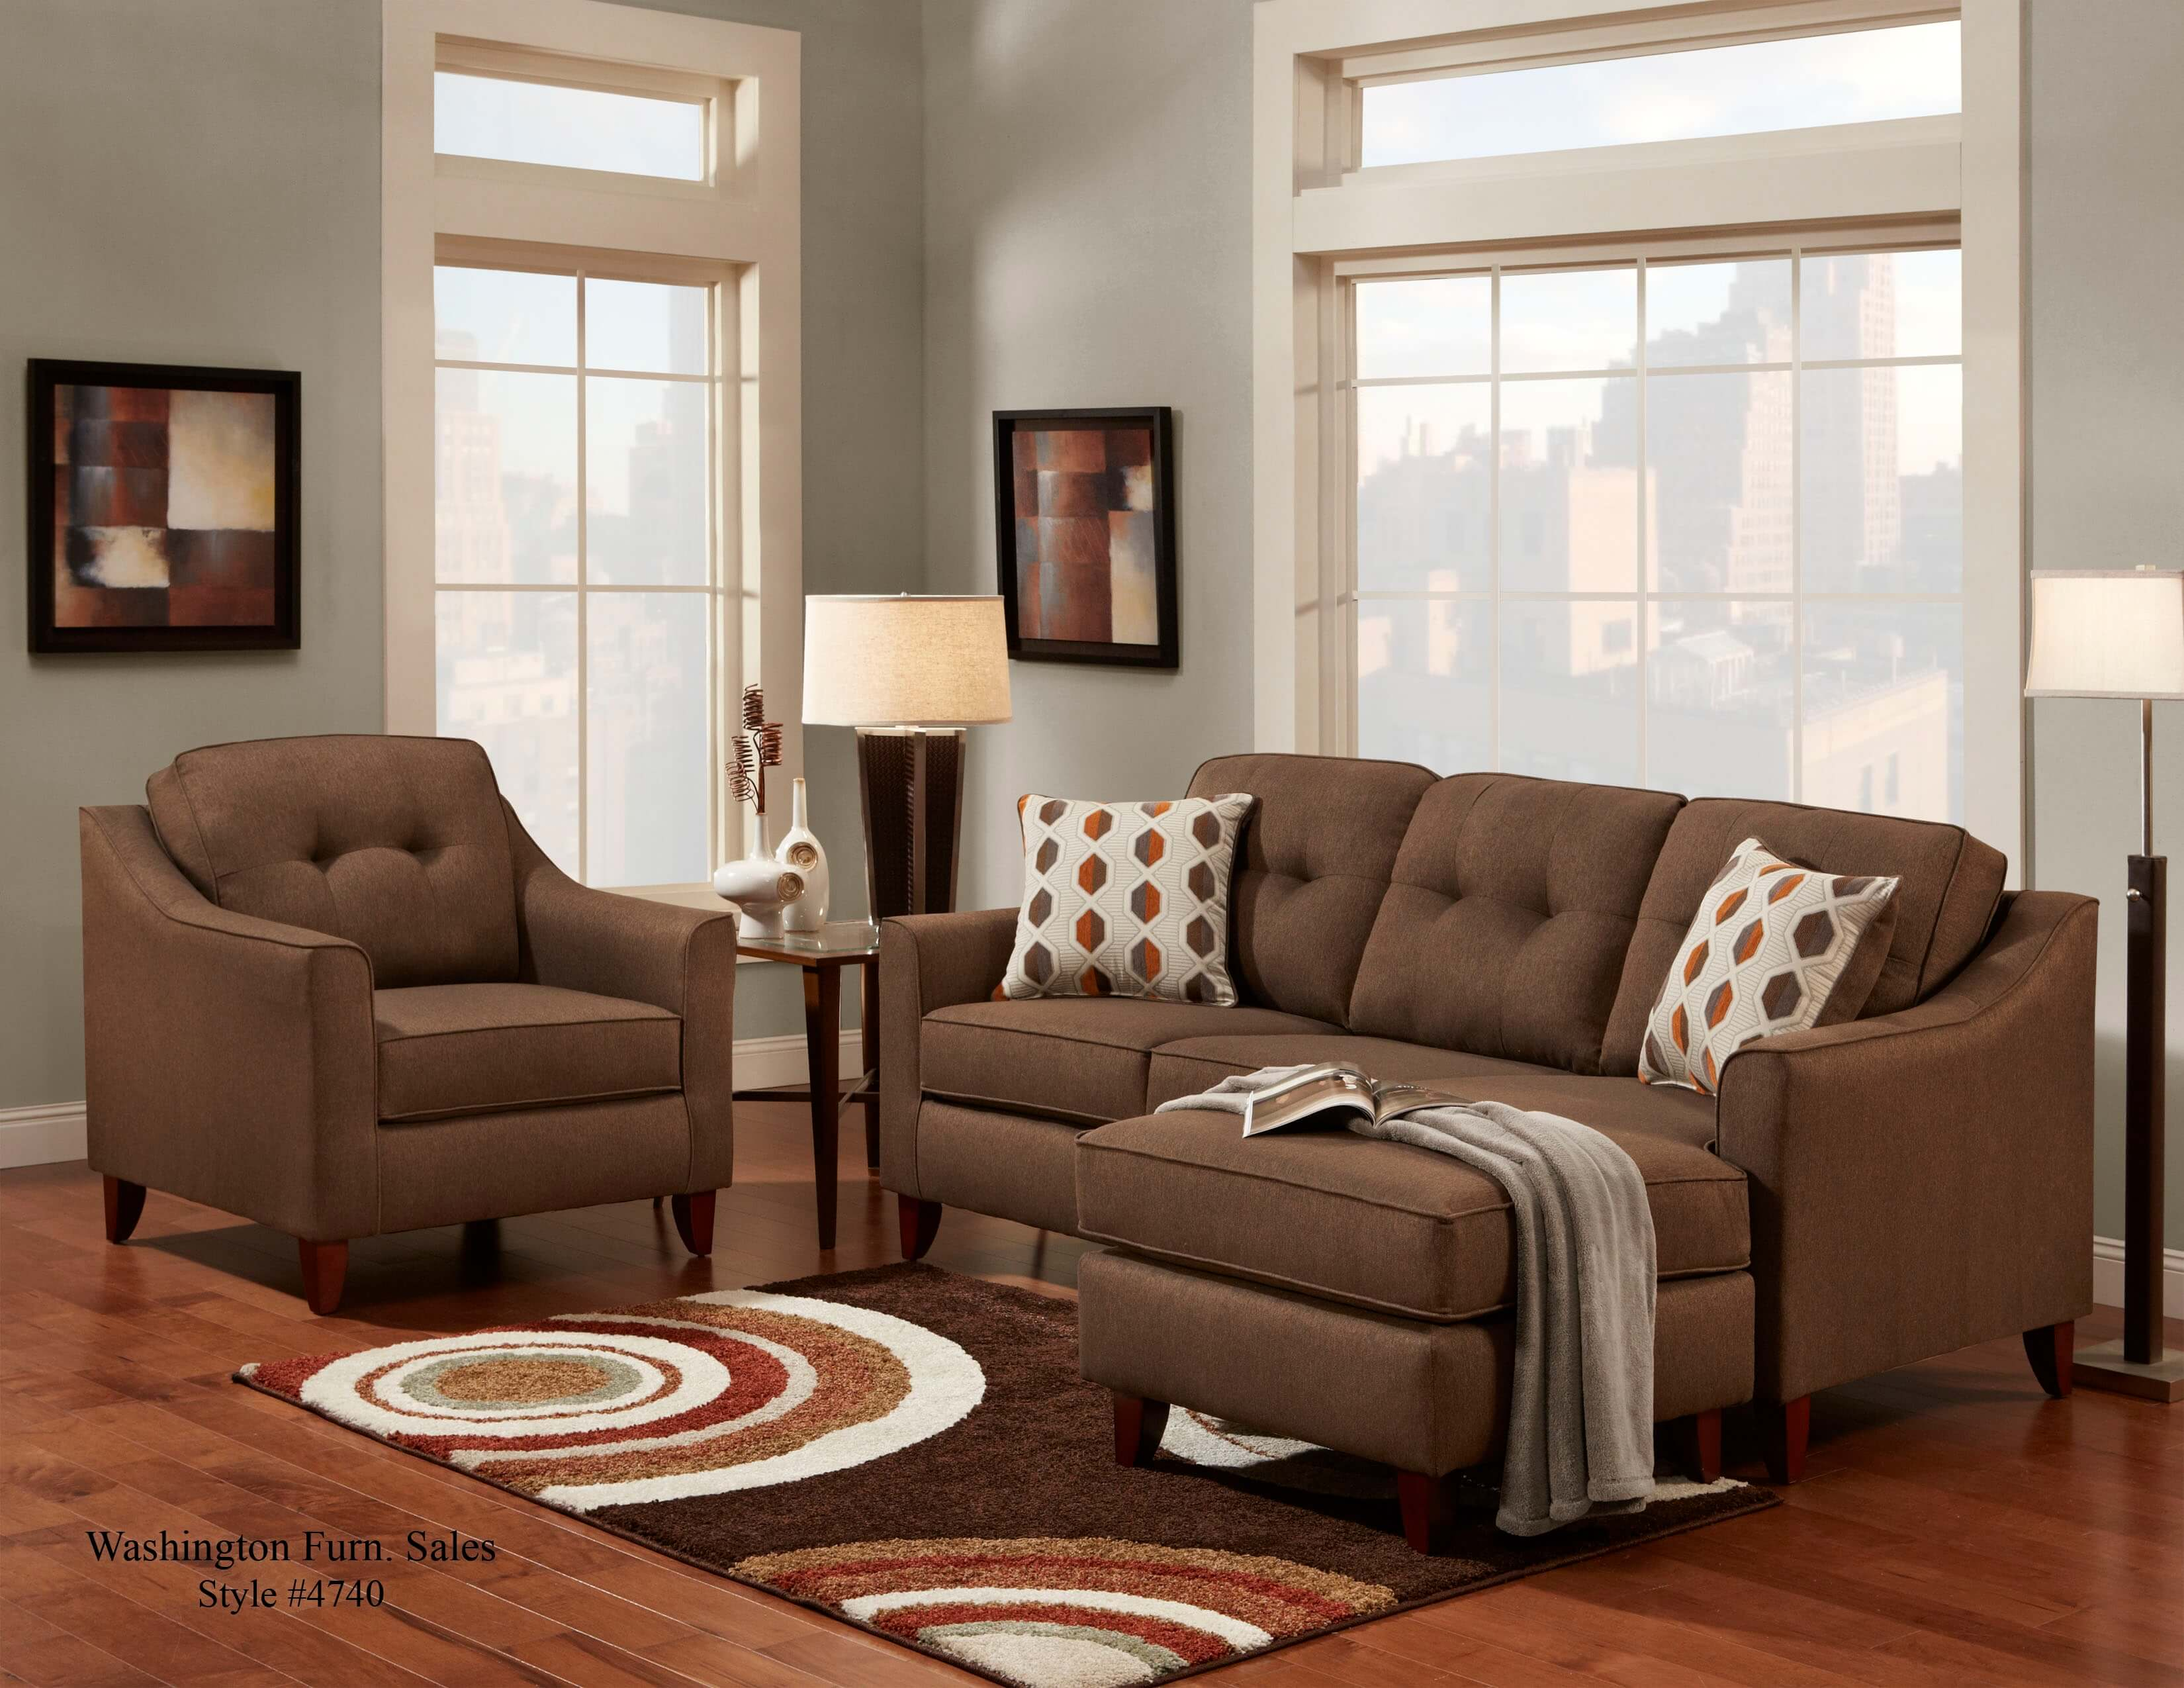 Sofa Set For Drawing Room With Price Stoked Chocolate Sofa Chaise Sectional Sofa Sets